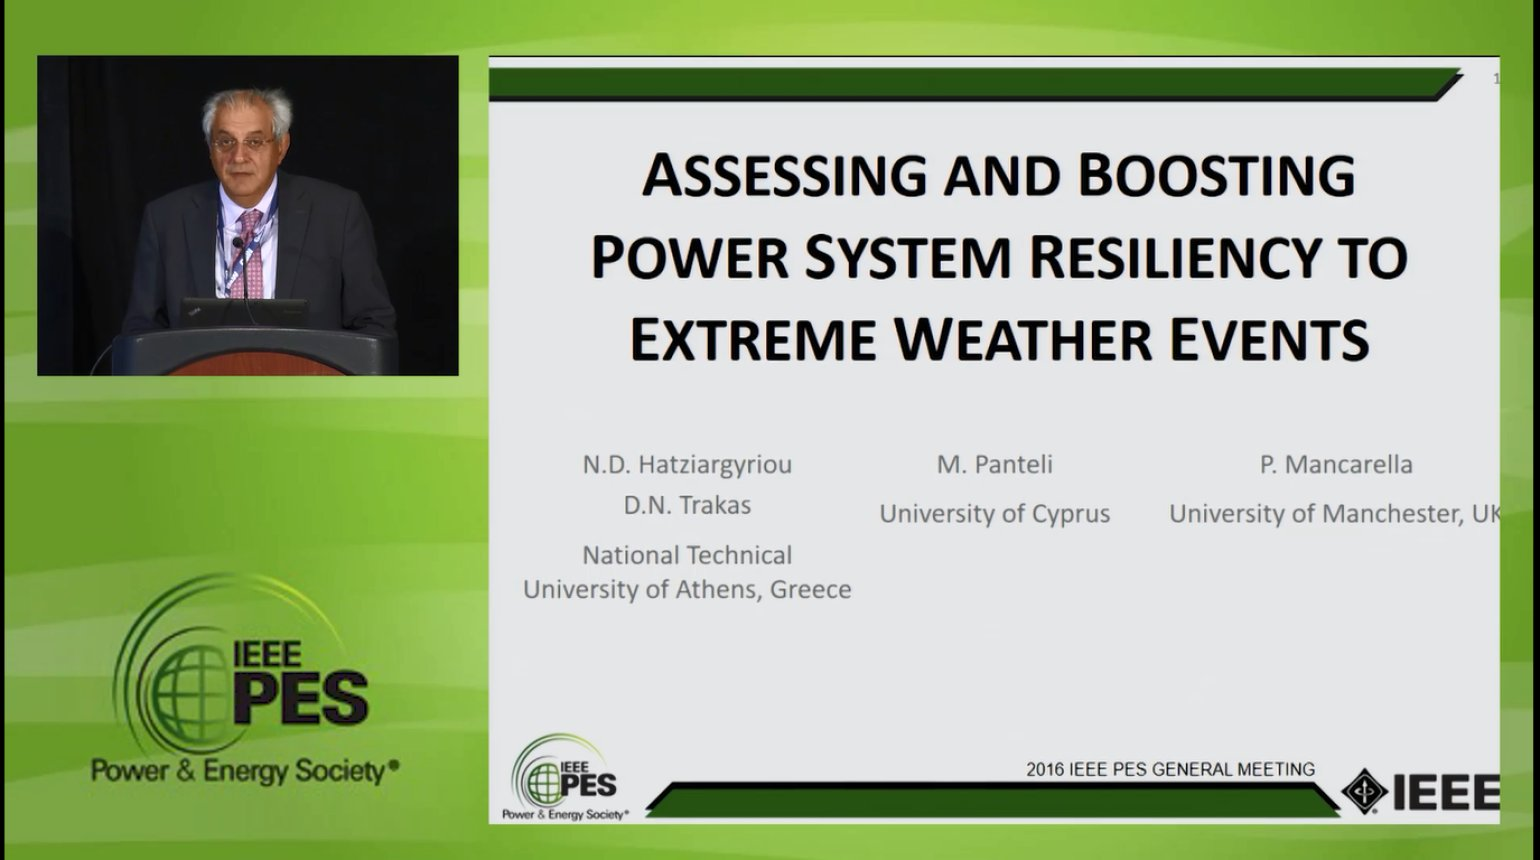 Resiliency in the Power Grid - Assessing and Boosting Power System Resiliency to Extreme Weather Events (Video)